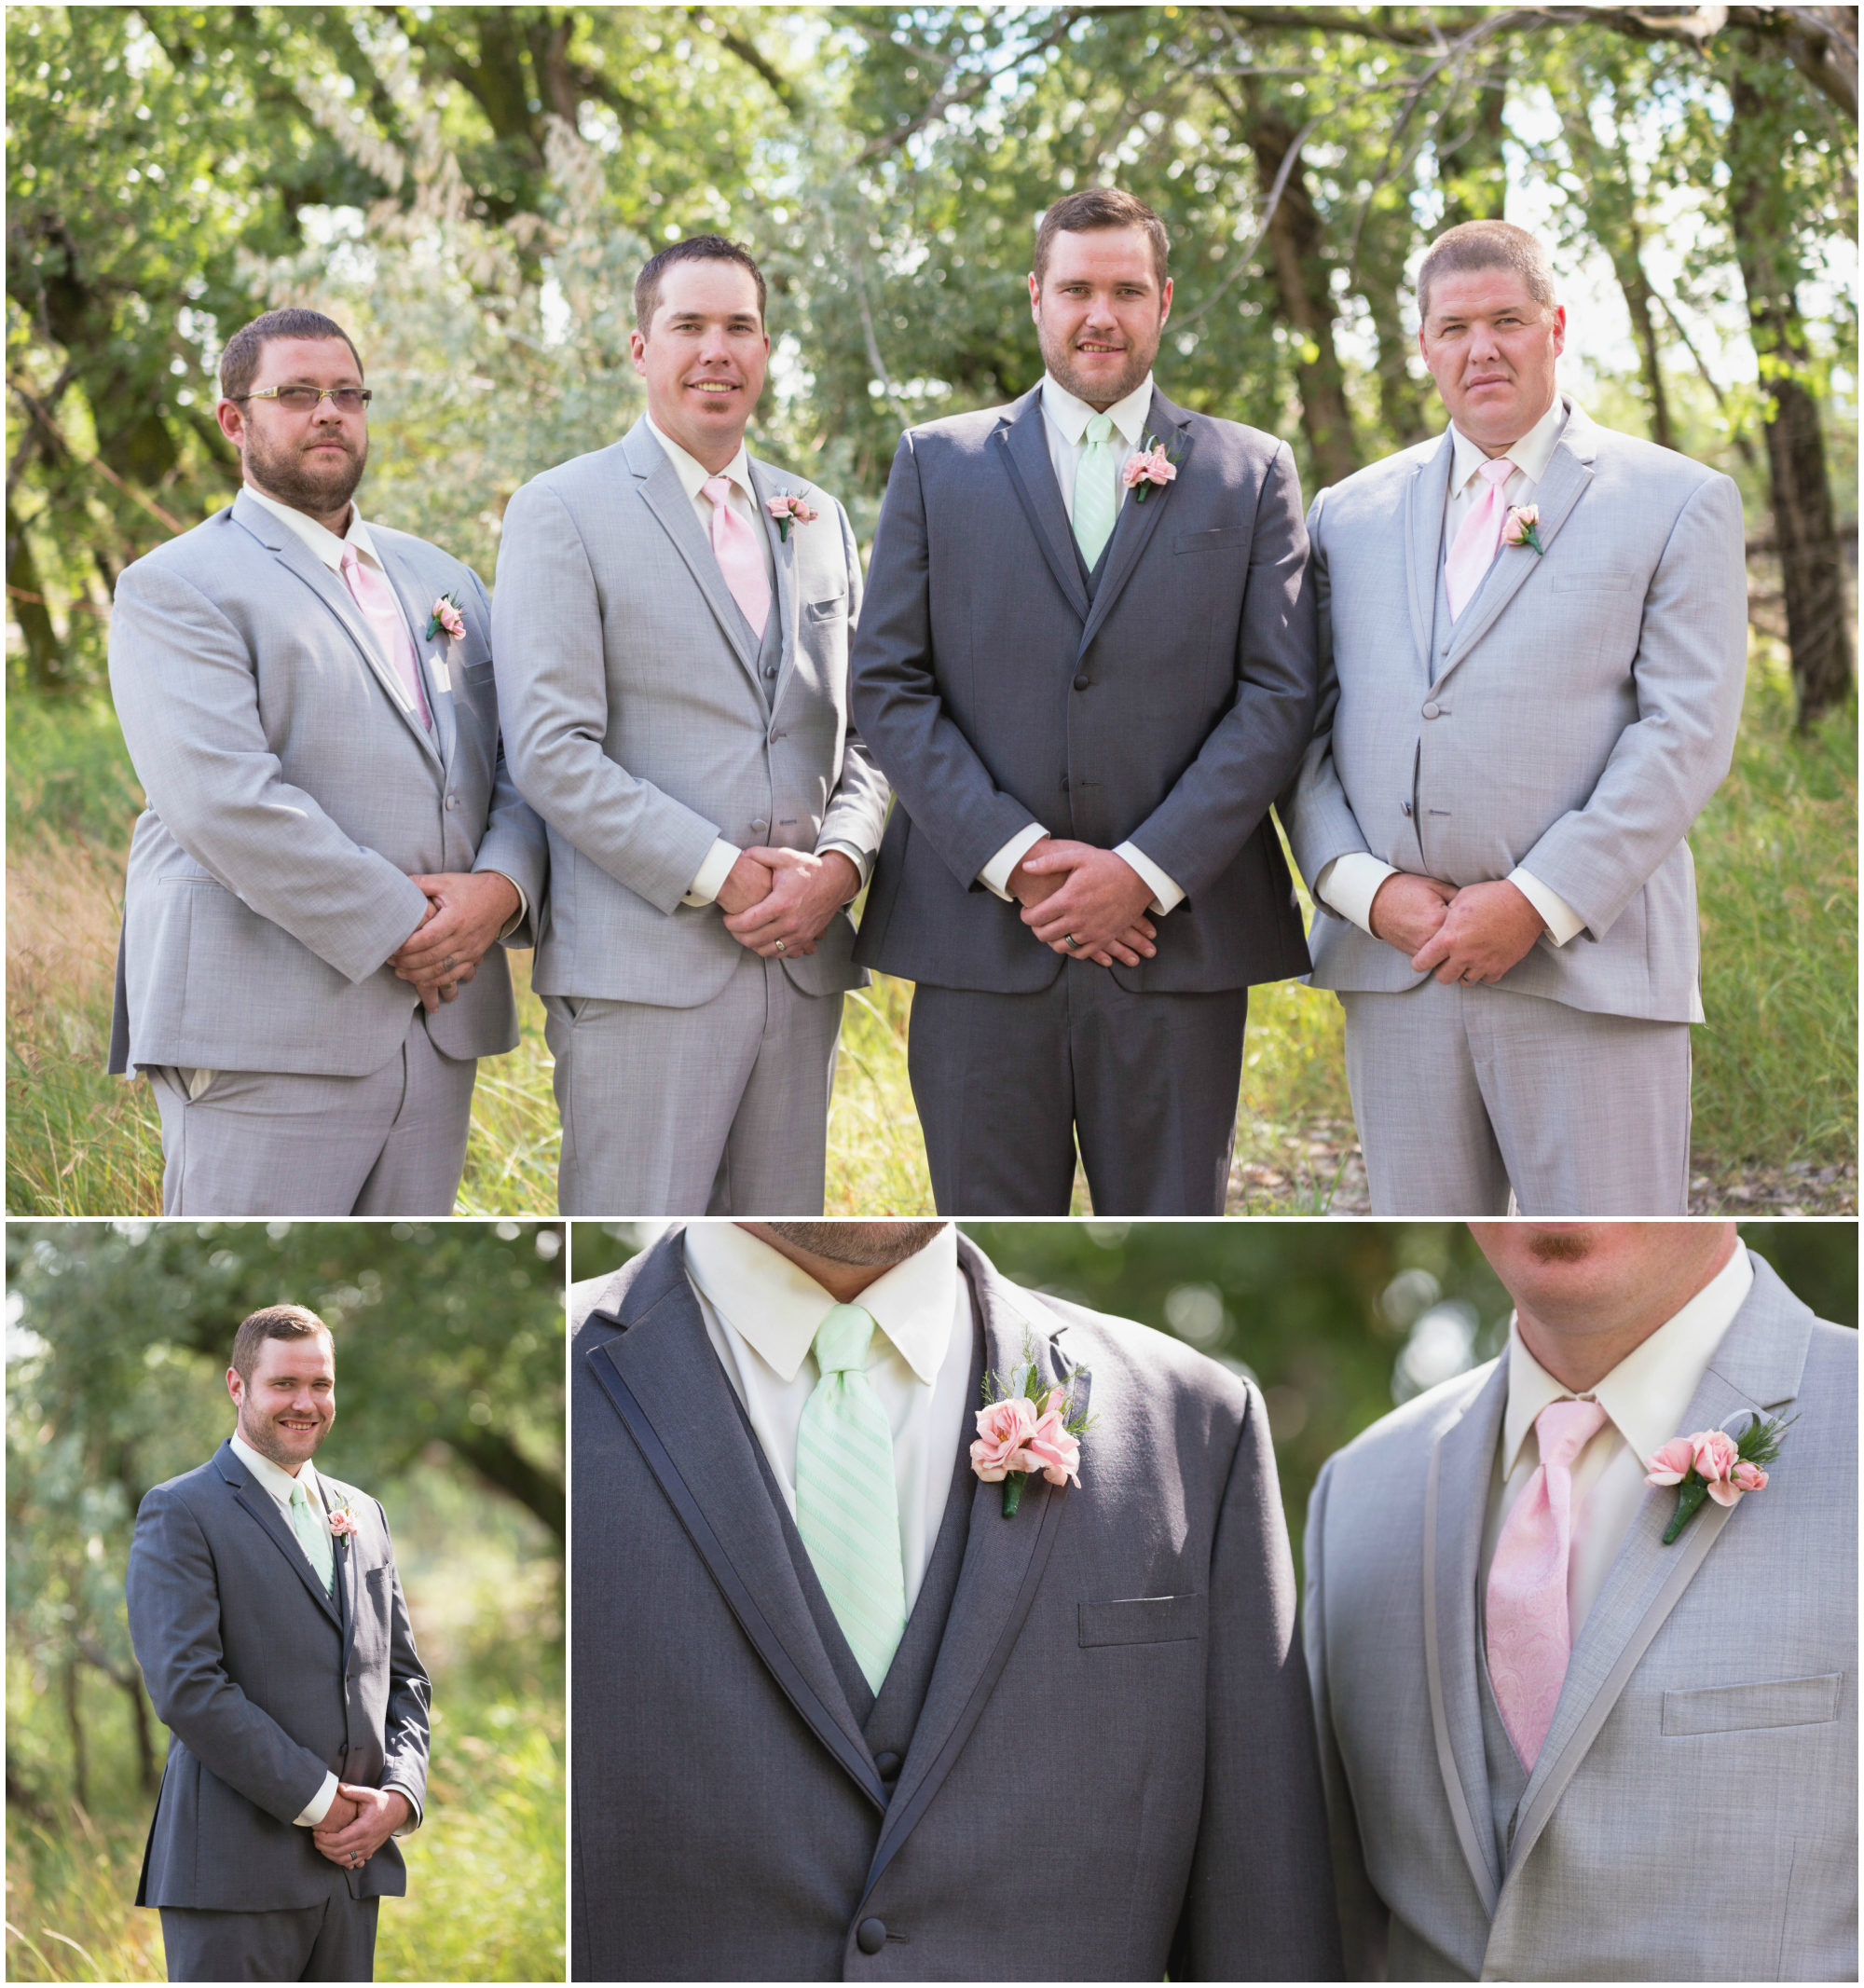 medicine-hat-golf-course-wedding_16.png